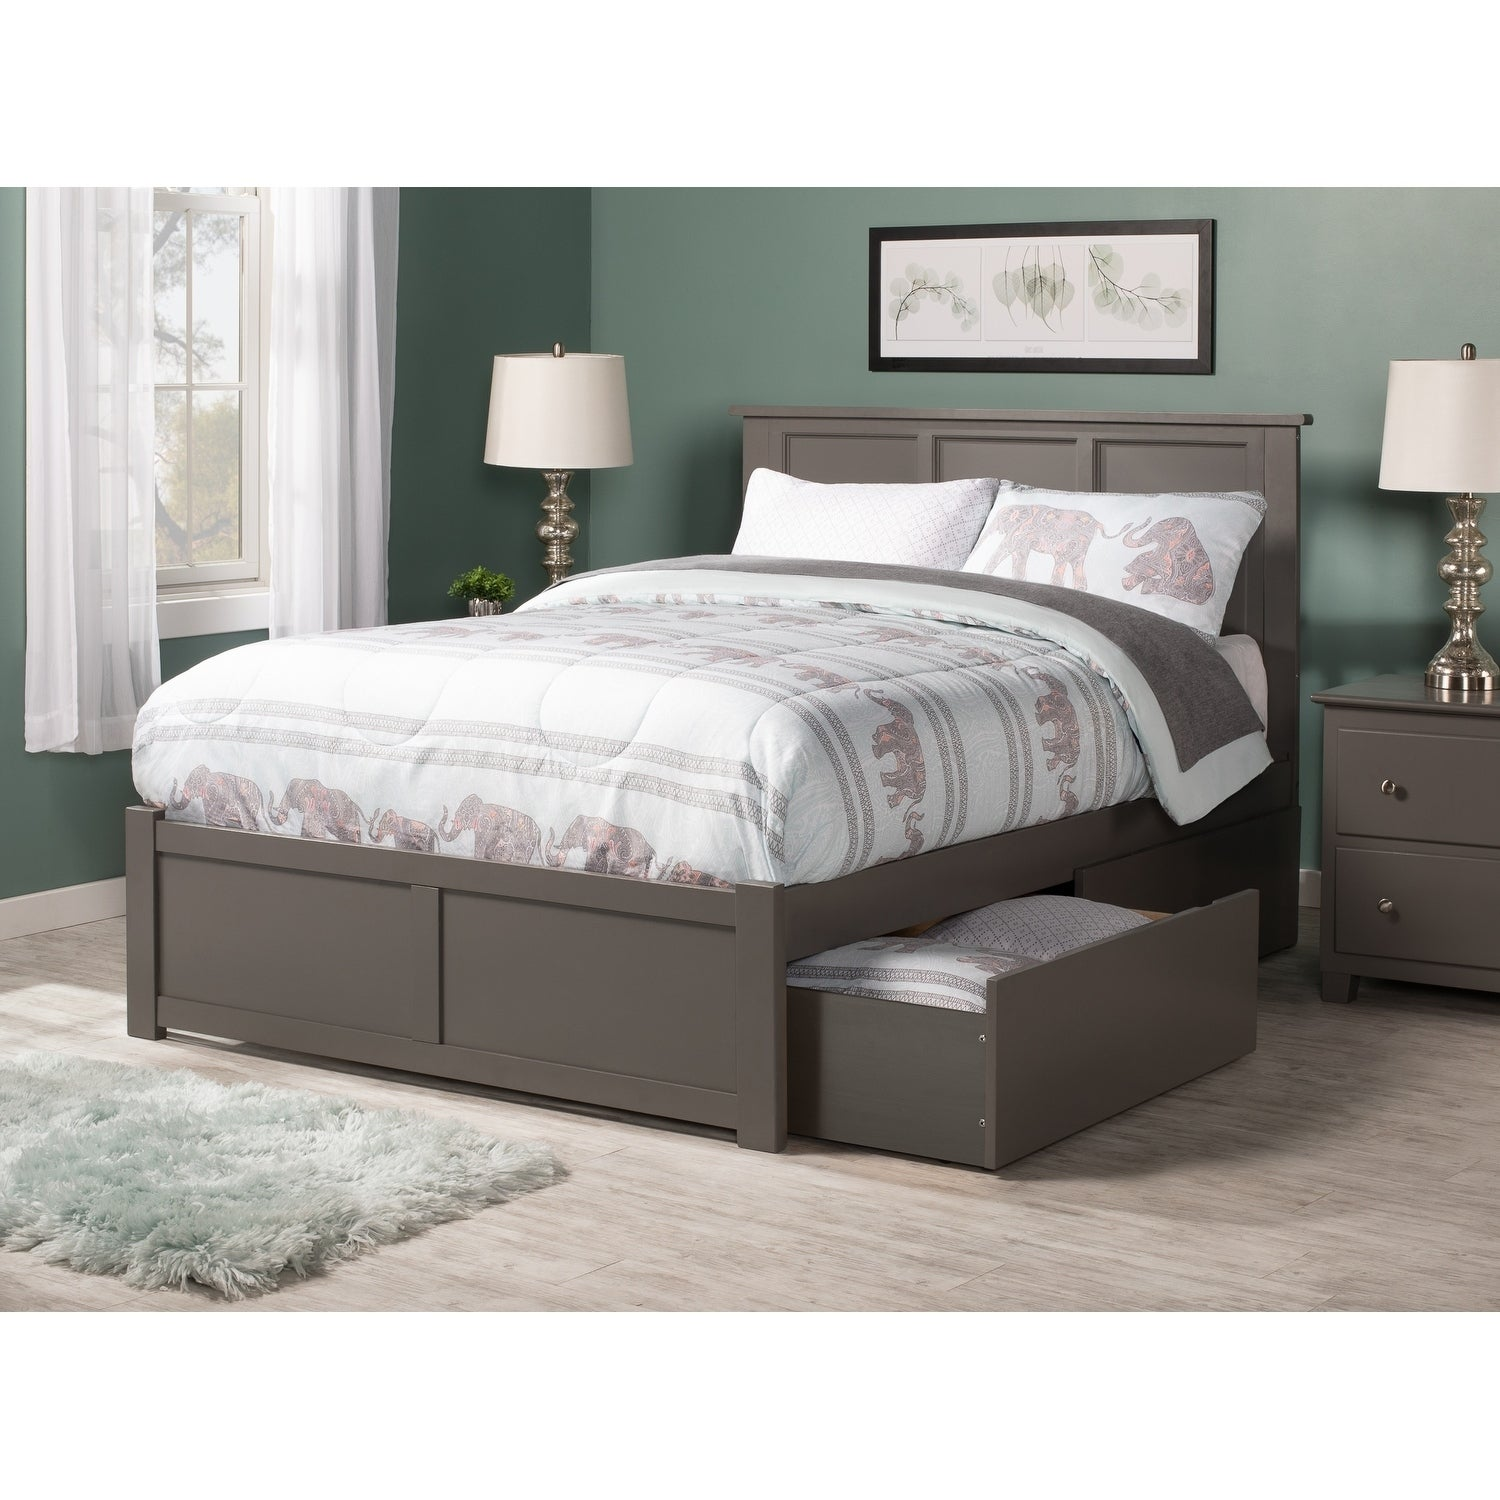 Madison Full Platform Bed With Flat Panel Foot Board And 2 Urban Drawers In Atlantic Grey By Furniture